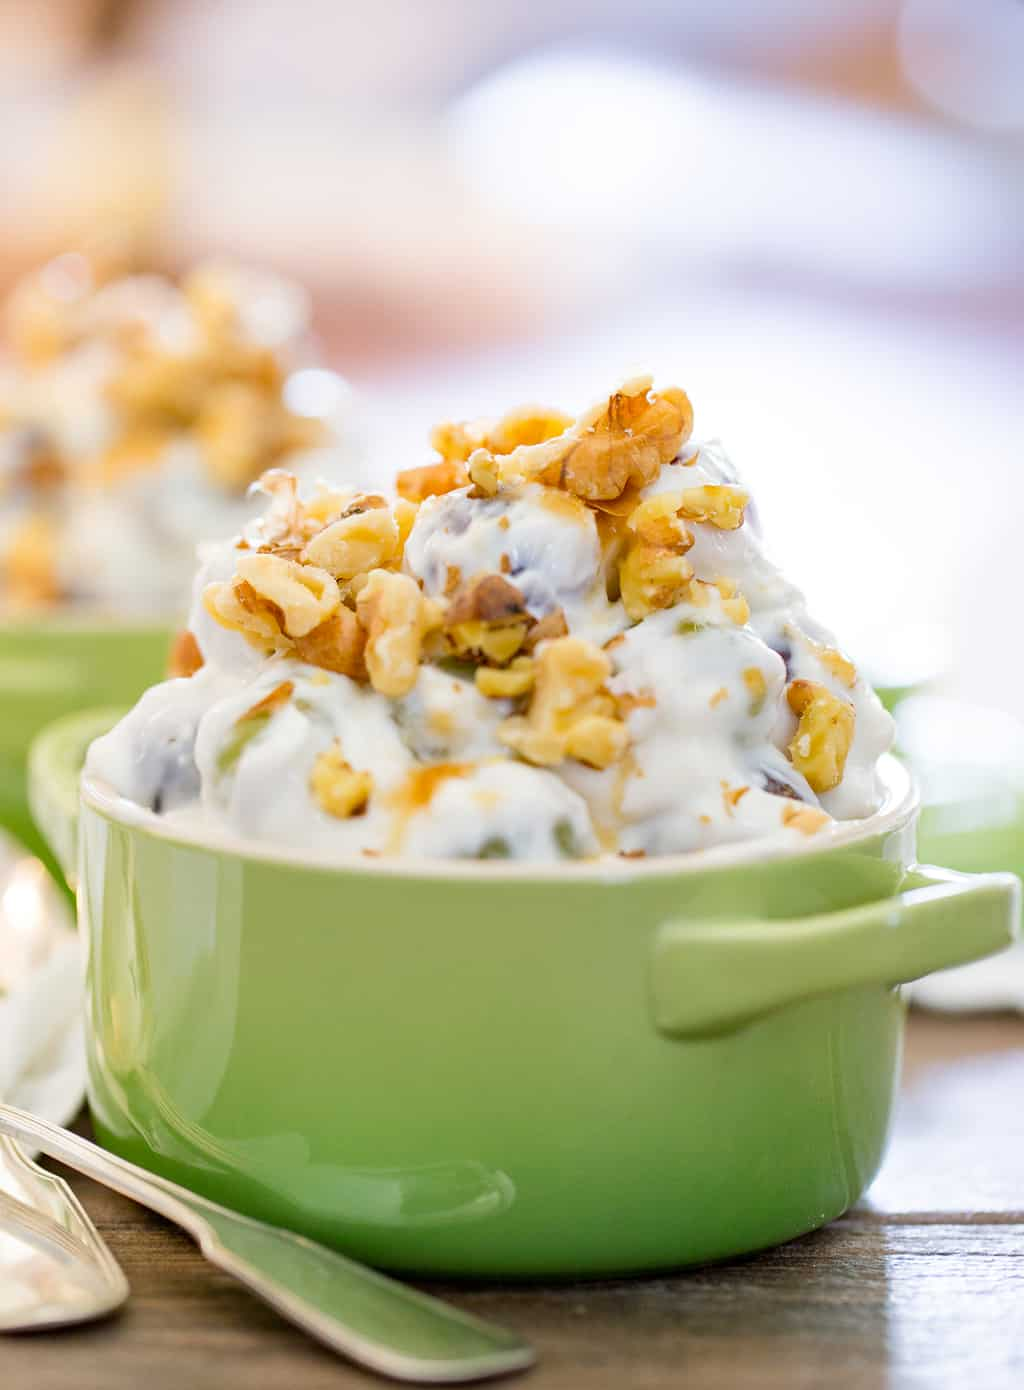 grape salad recipe from the side